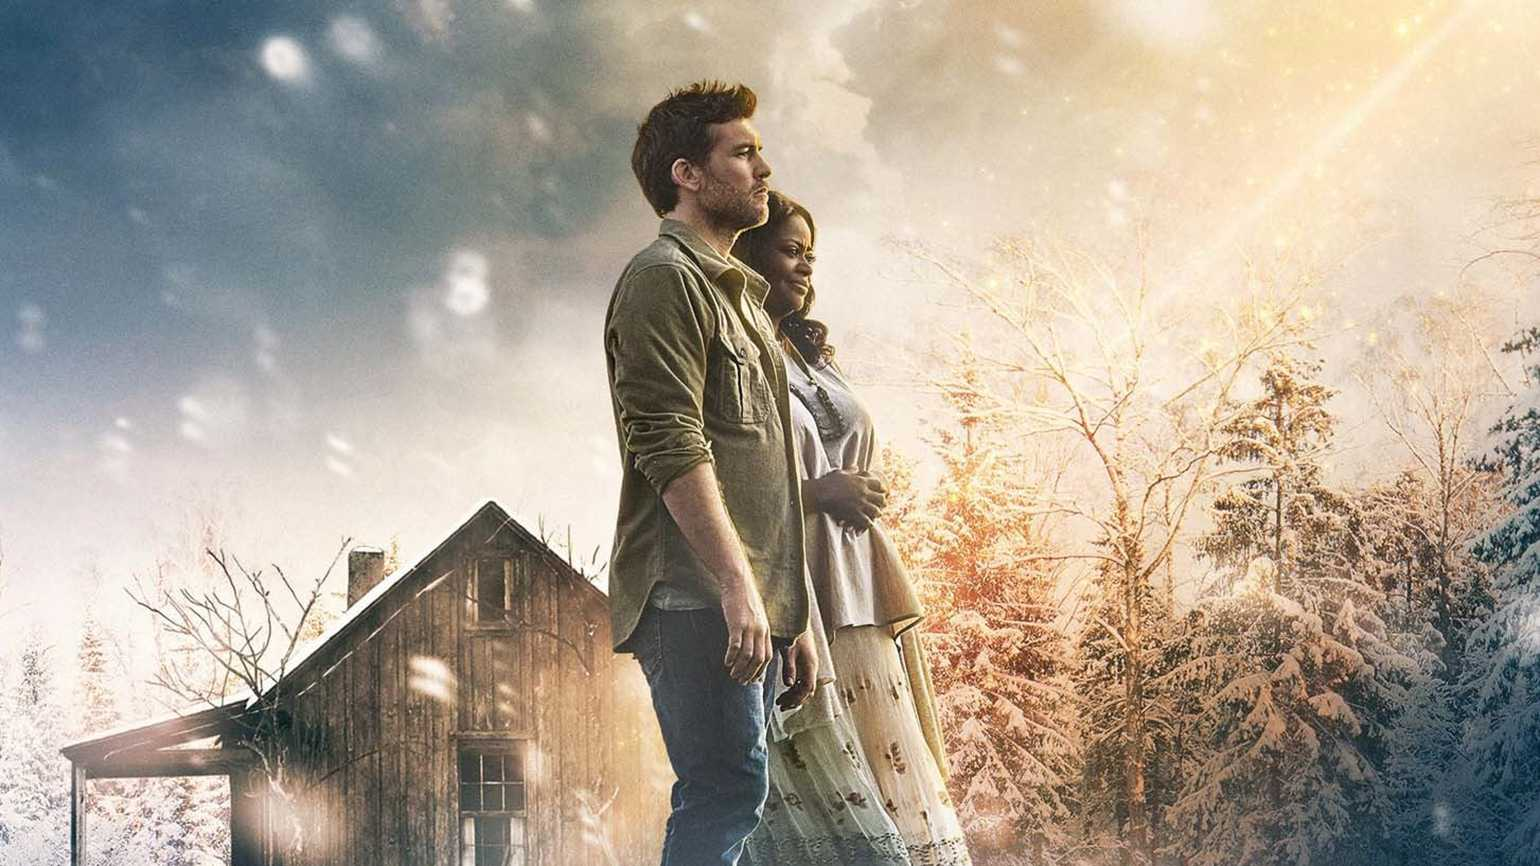 A scene from 'The Shack'